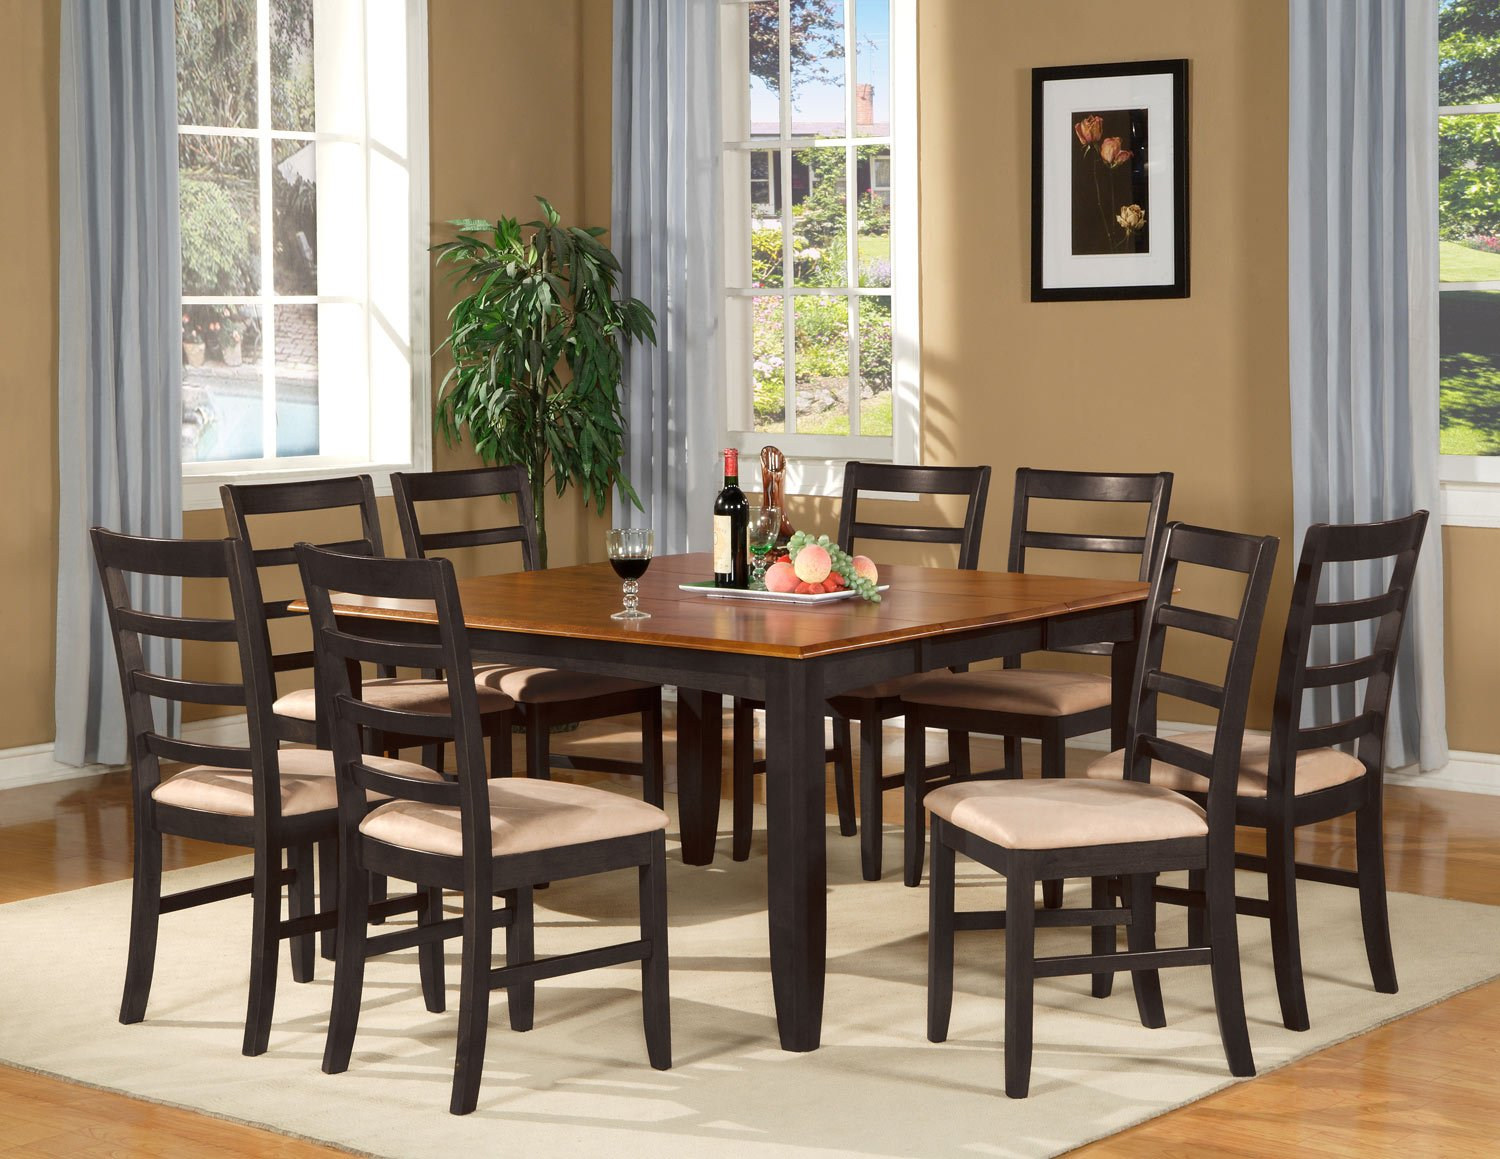 Parfait 9 Pc Square Gathering Dining Table Set 54quotx54  : 4ebd39fcb0233210483b from dinettestyle.ecrater.com size 1500 x 1159 jpeg 278kB